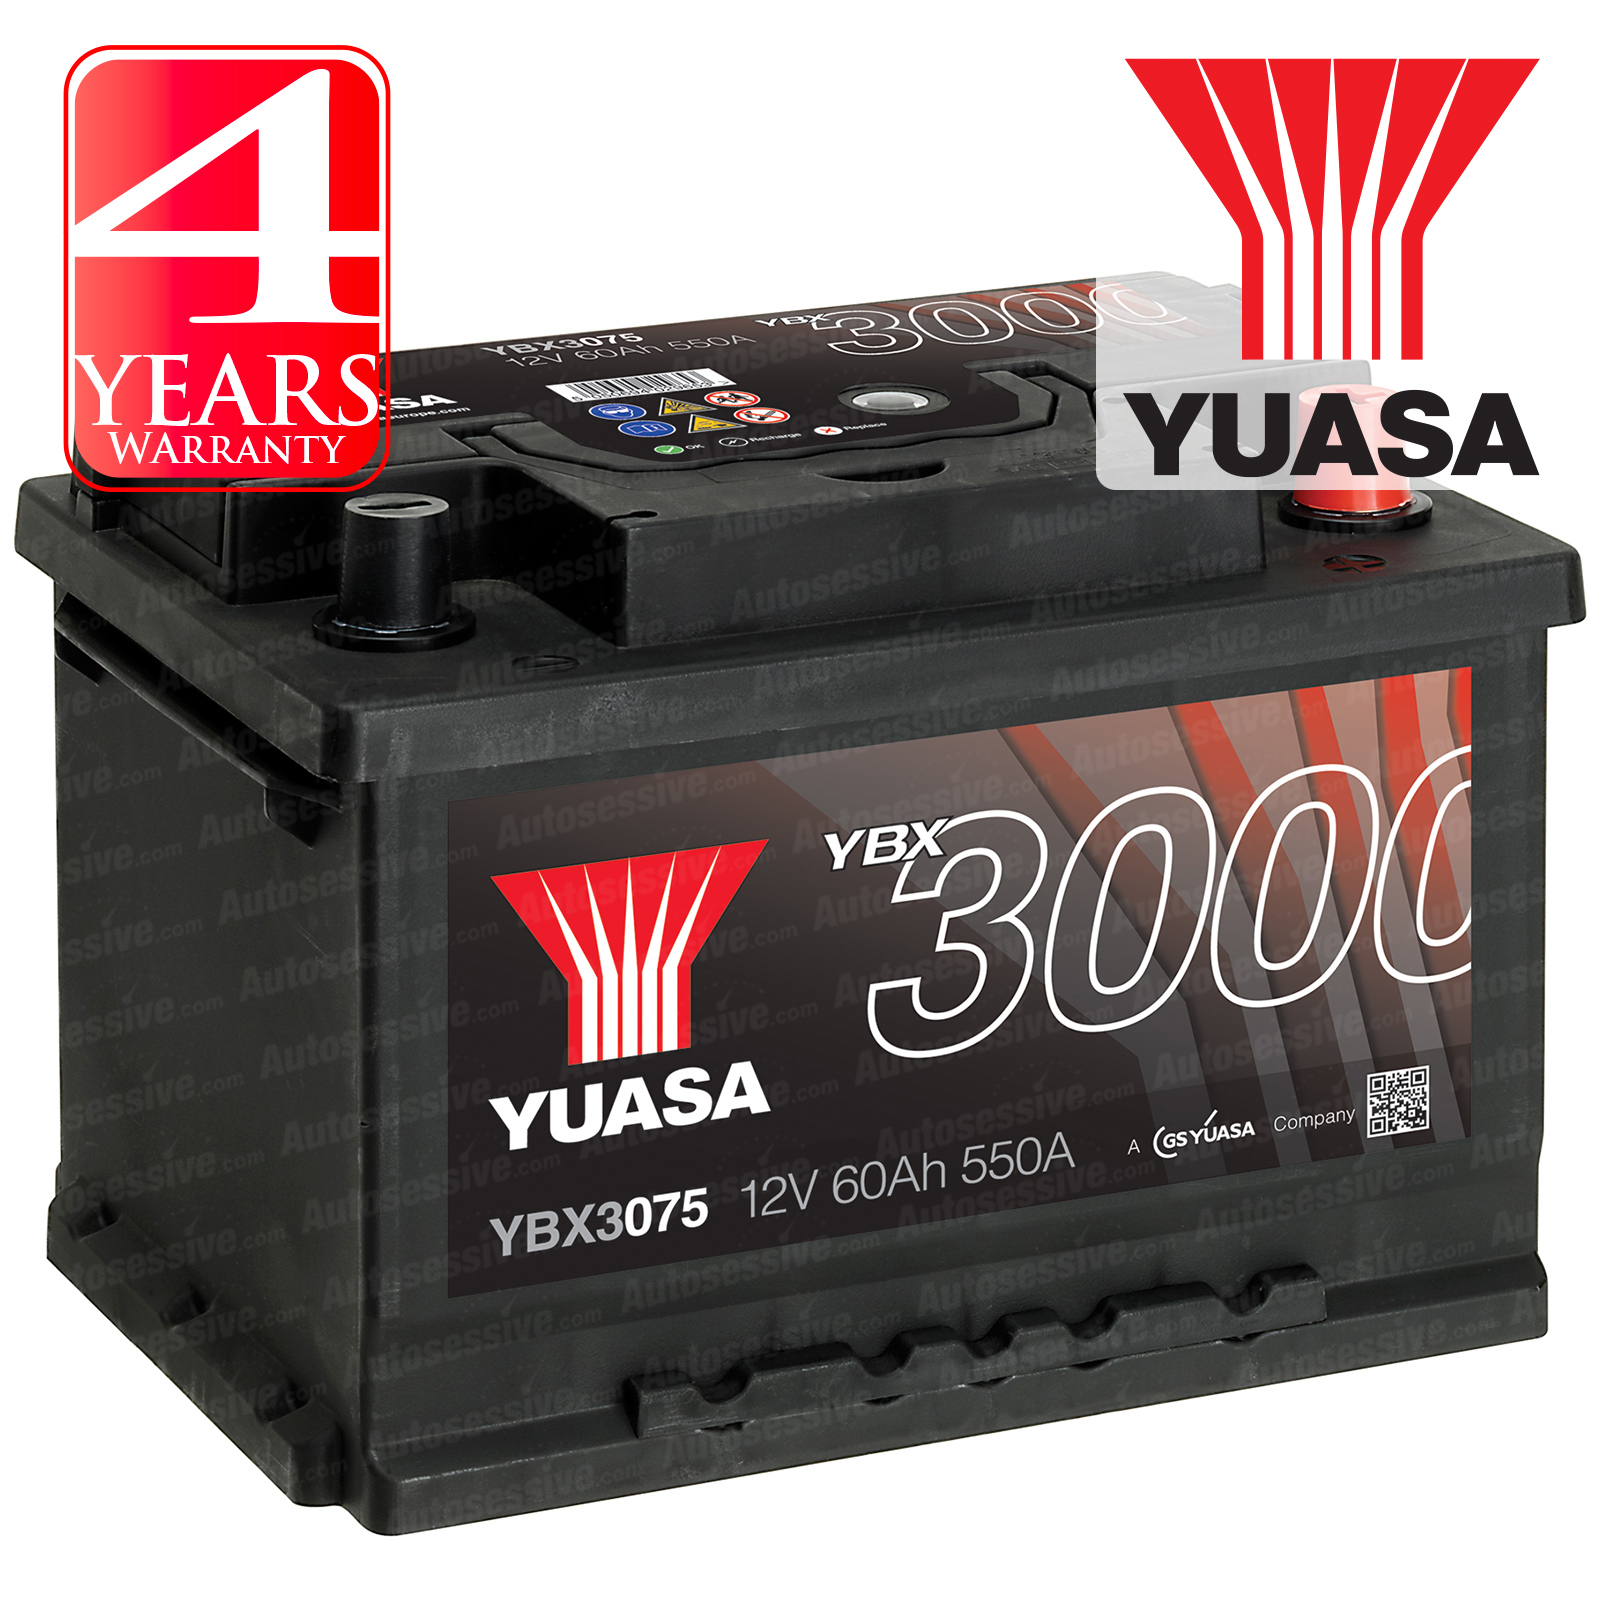 Yuasa Car Battery Calcium 12v 550cca 60ah T1 For Mercedes Slk230 Kompressor Fuse Diagram R170 23